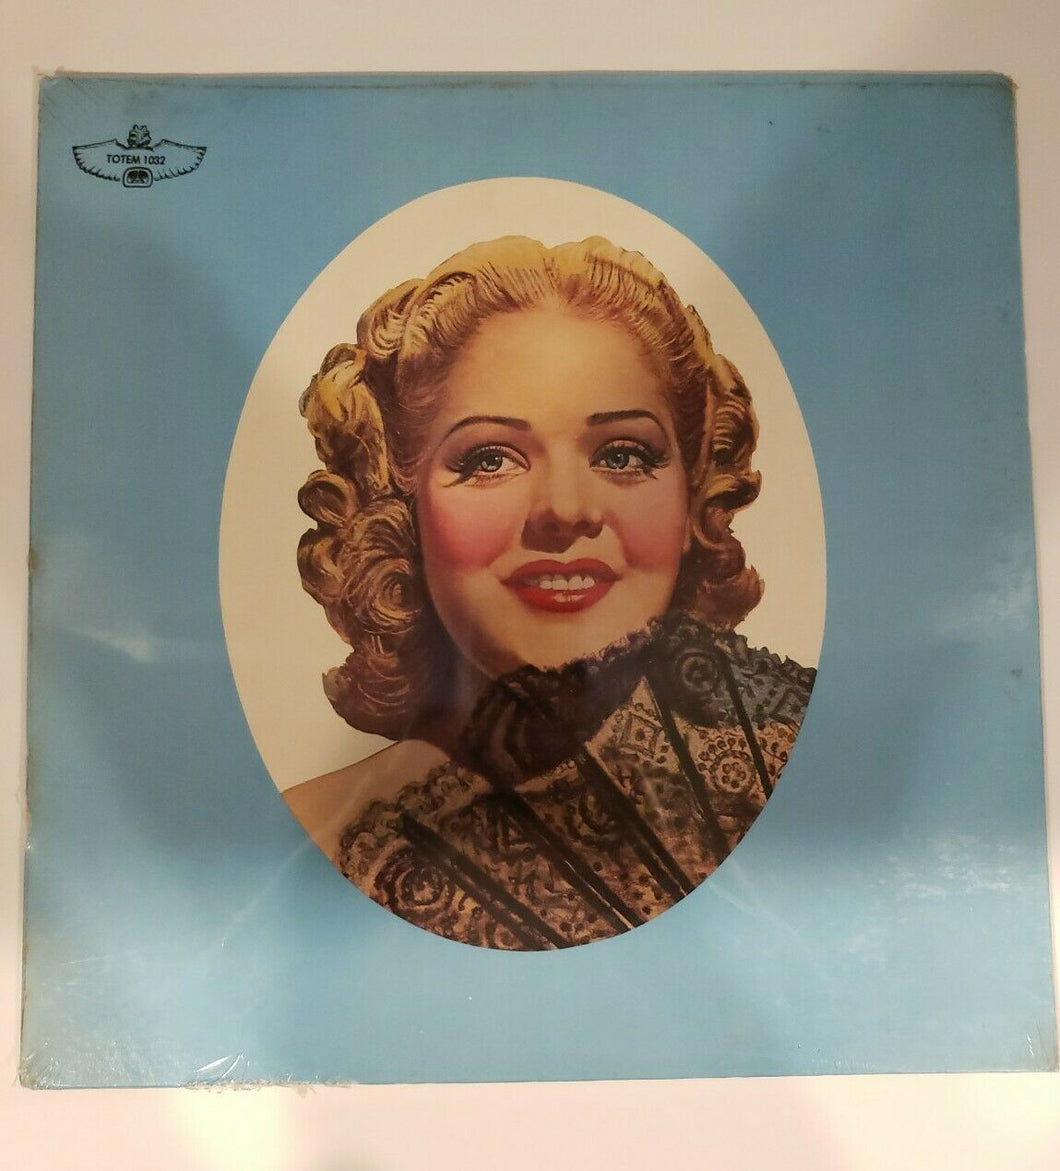 ALICE FAYE On Air Vol 2 LP Totem 1032 US 1979 SEALED Vocal 1D